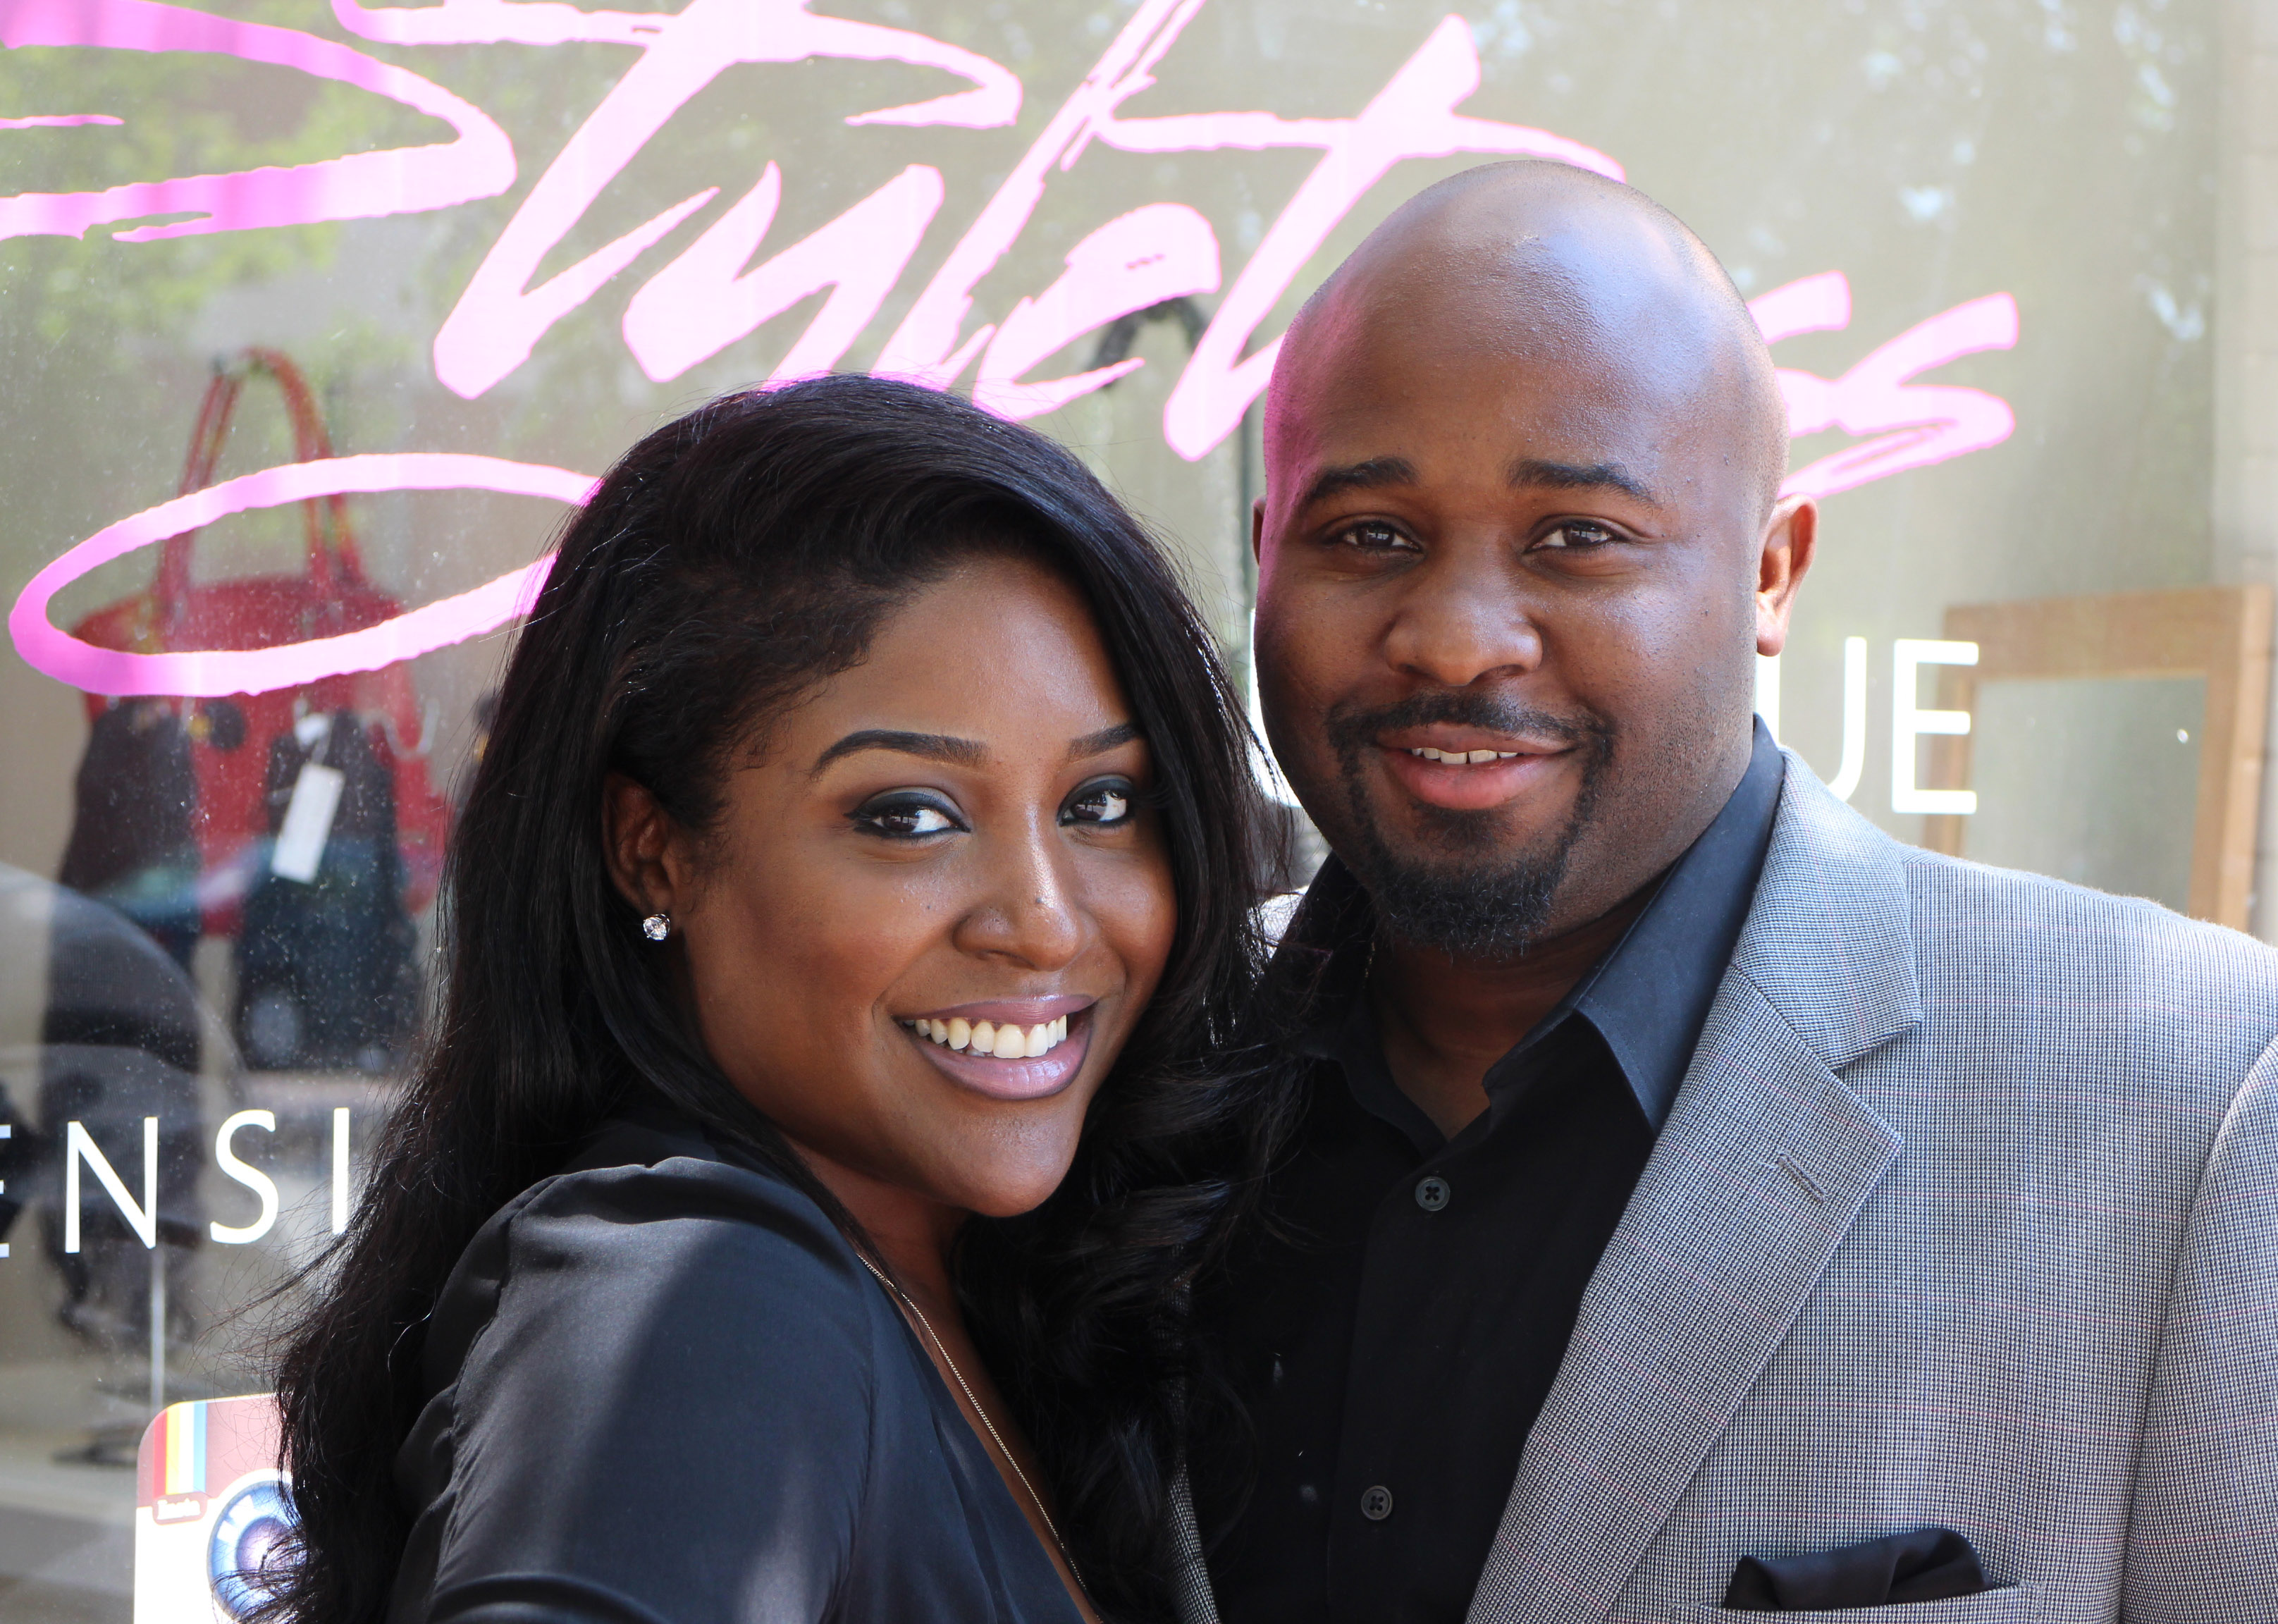 Kaneik Ferguson, founder and CEO of Richmond-based Styletress (left) helped launch her business with husband Trevor Ferguson (right).